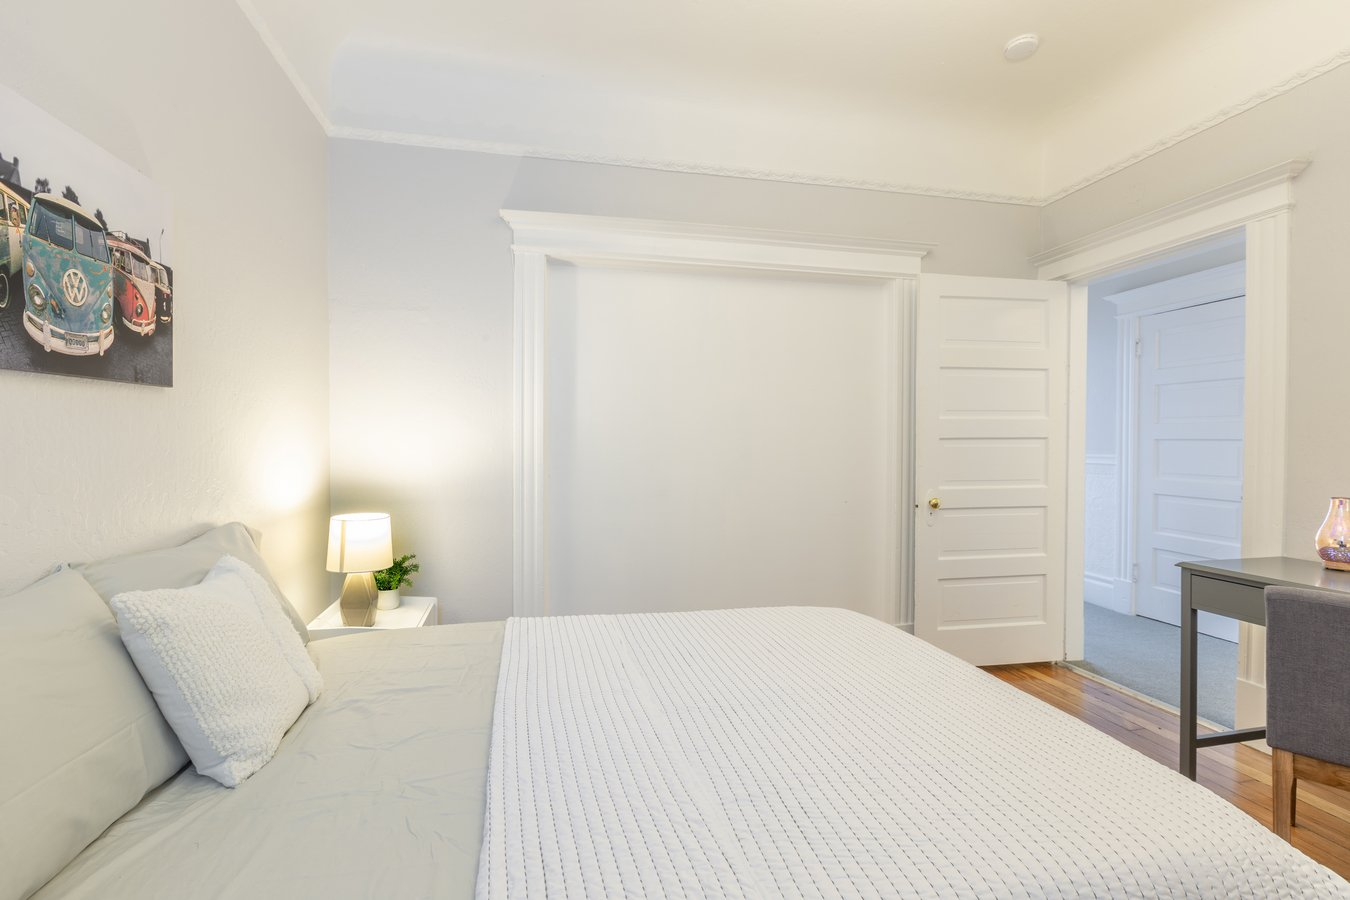 Studio 1 Bathroom House for rent at Ashbury St & Haight St Coliving in San Francisco, CA